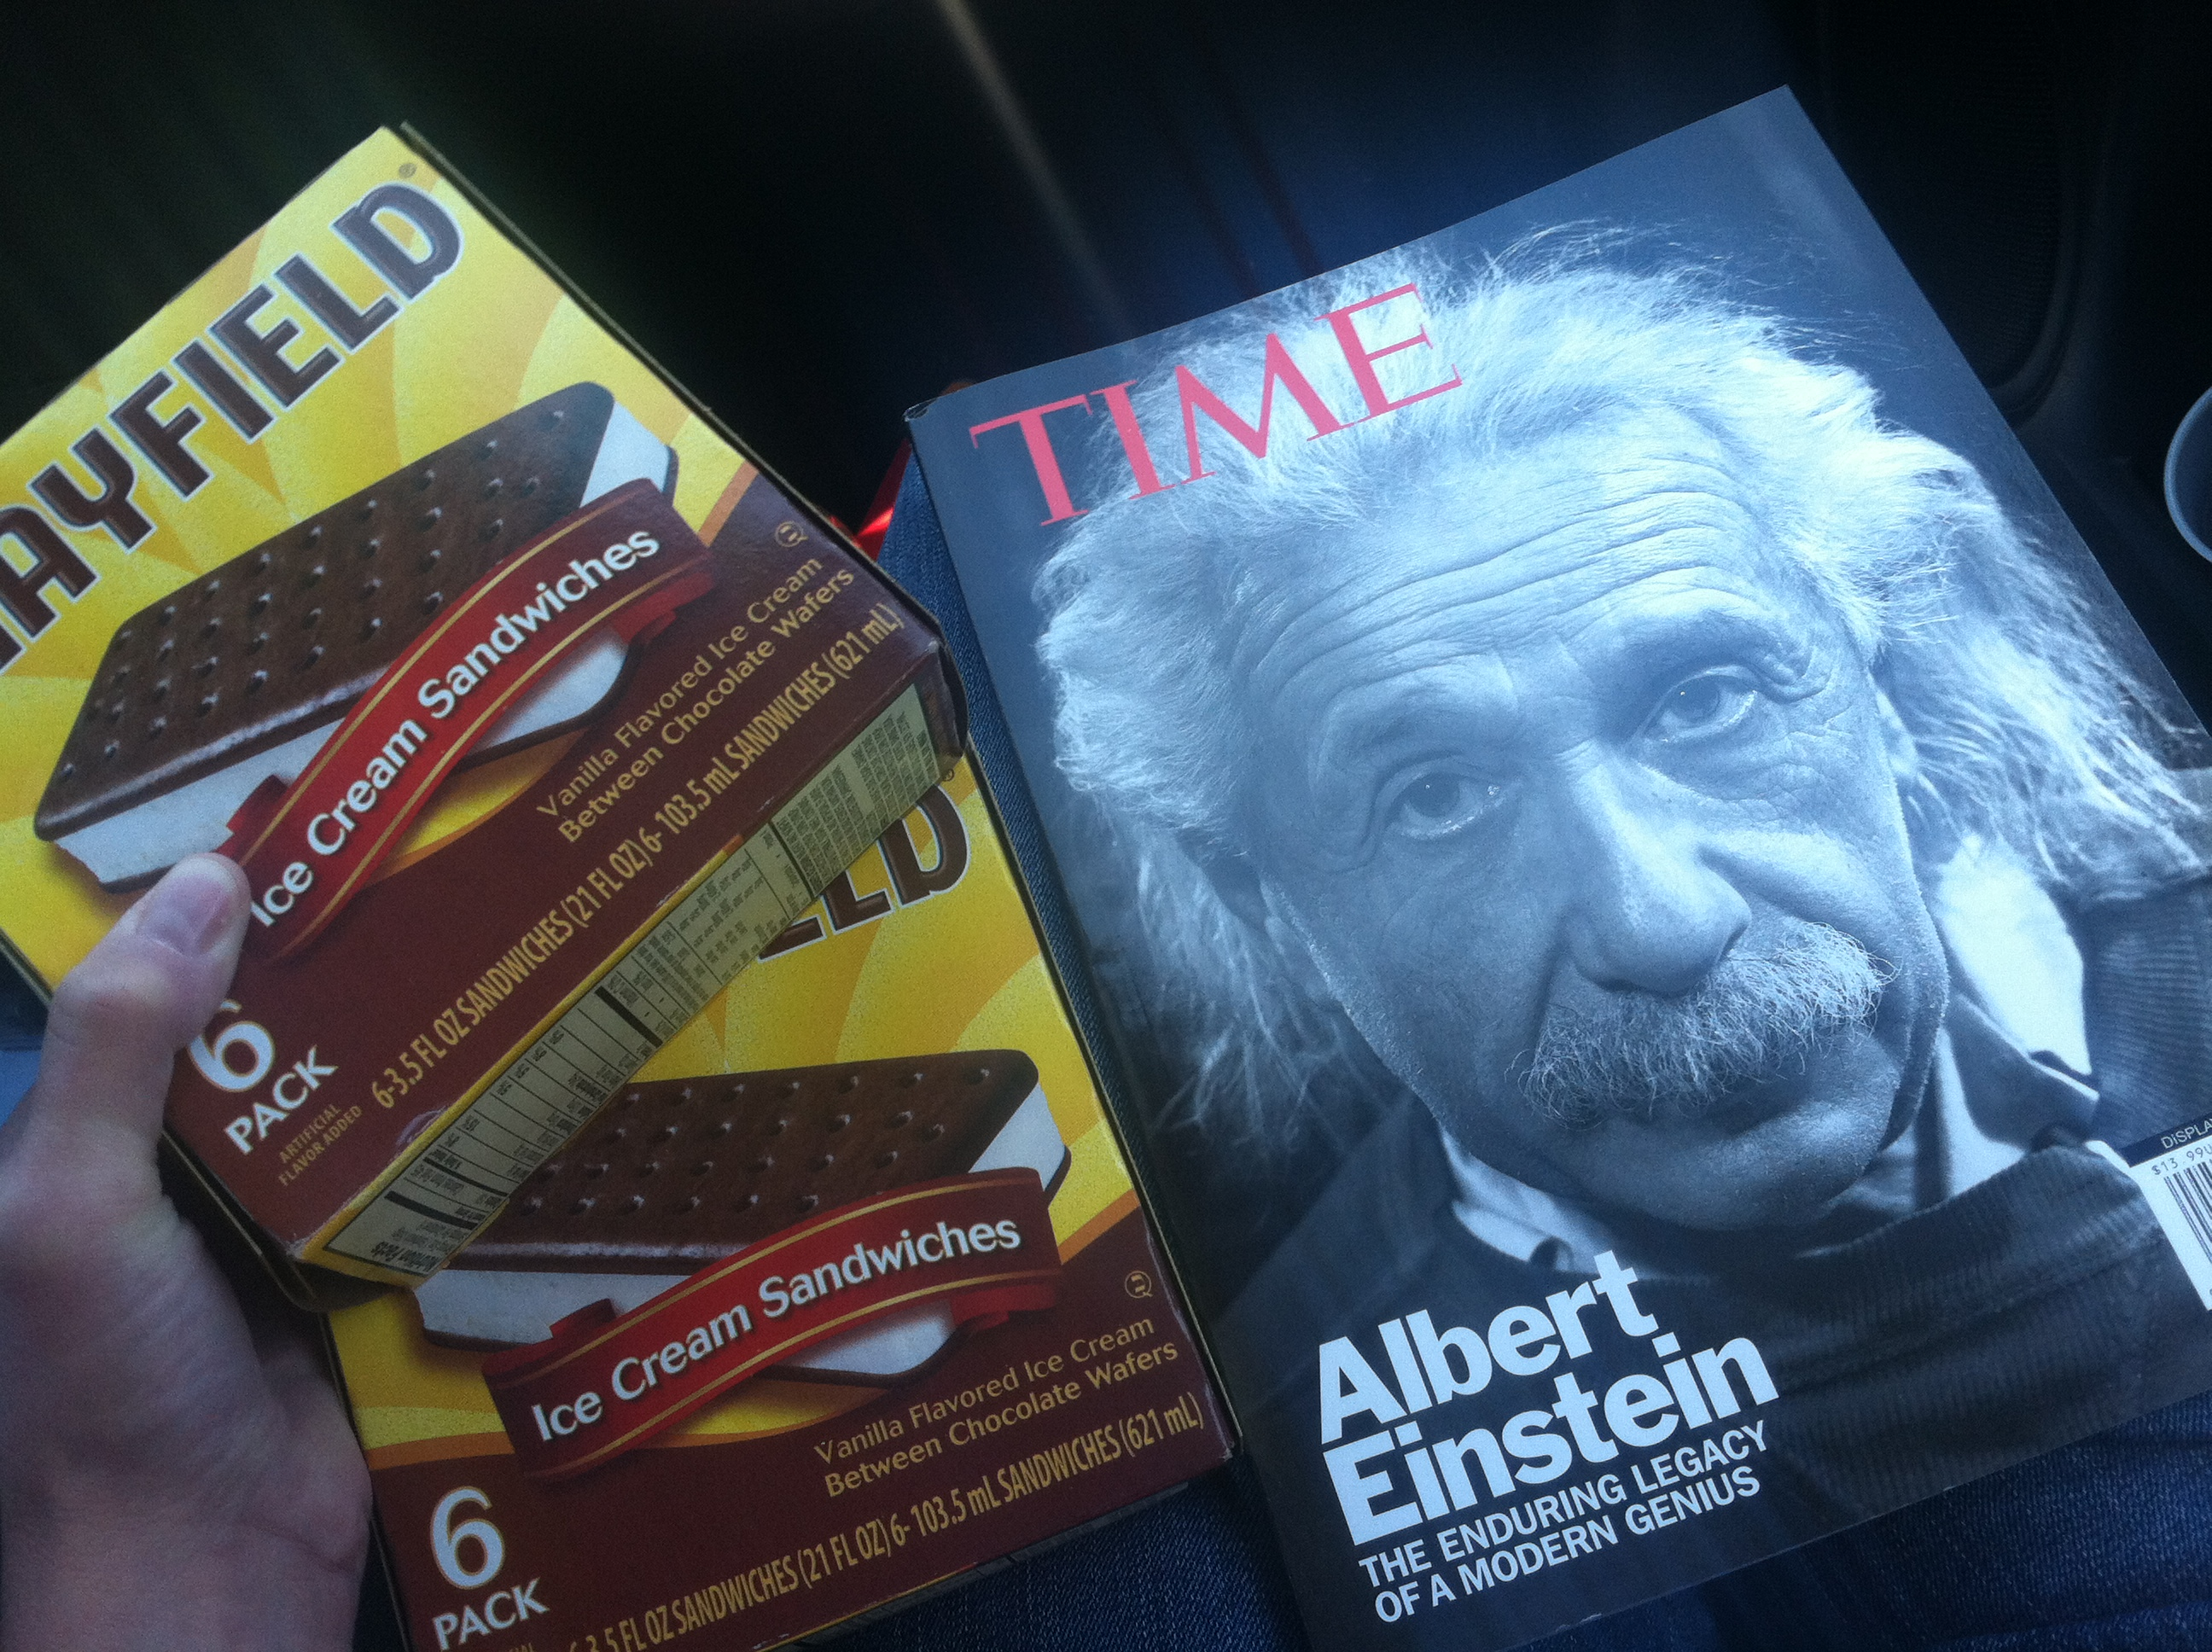 adhd and einstein Albert einstein (1879-19550) was born in germany and was atheoretical physicist and mathematician, widely considered one ofthe greatest physicists of all time.